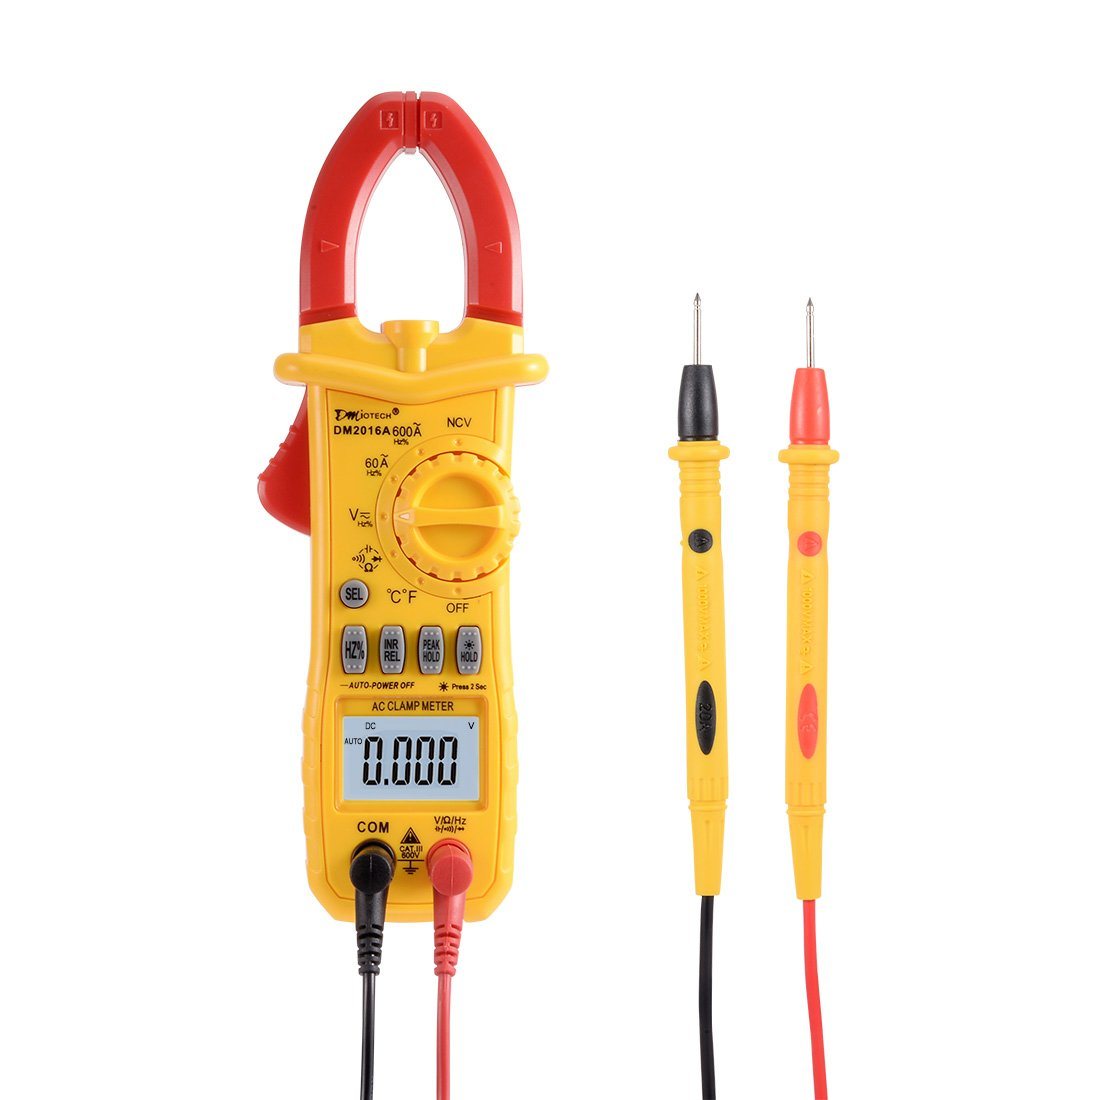 DMiotech DM2016A 600A AC Clamp Meter Volt Resistance Tester with LCD Display Ammeter Multimeter w Temperature NCV Test